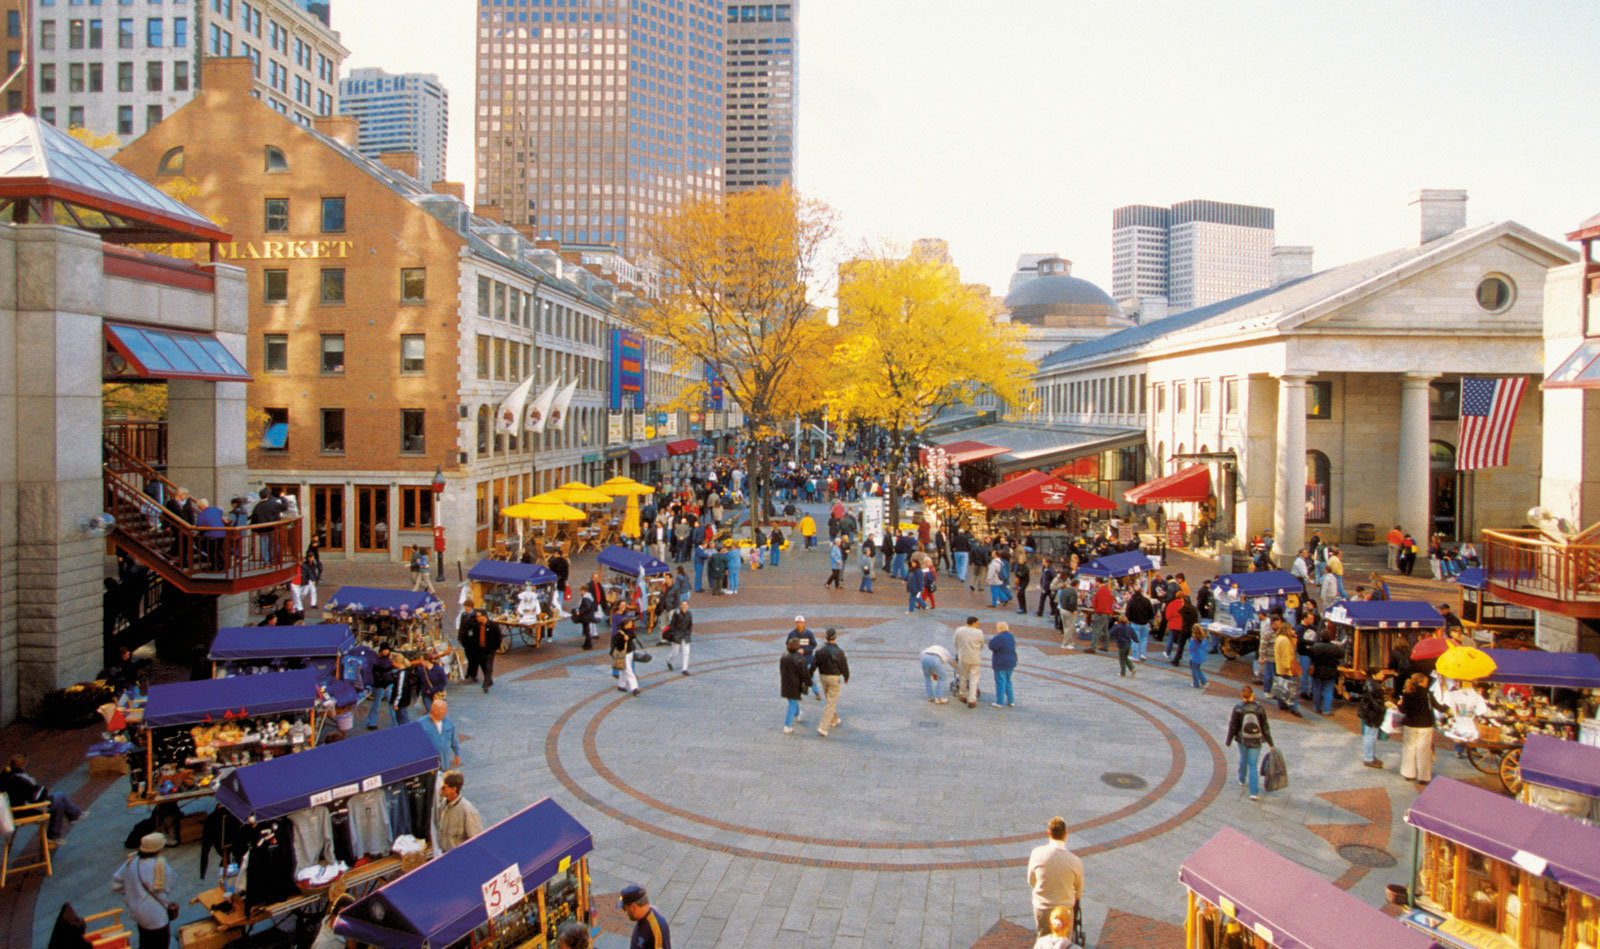 faneuil-hall-market-place-at-massachusetts-top